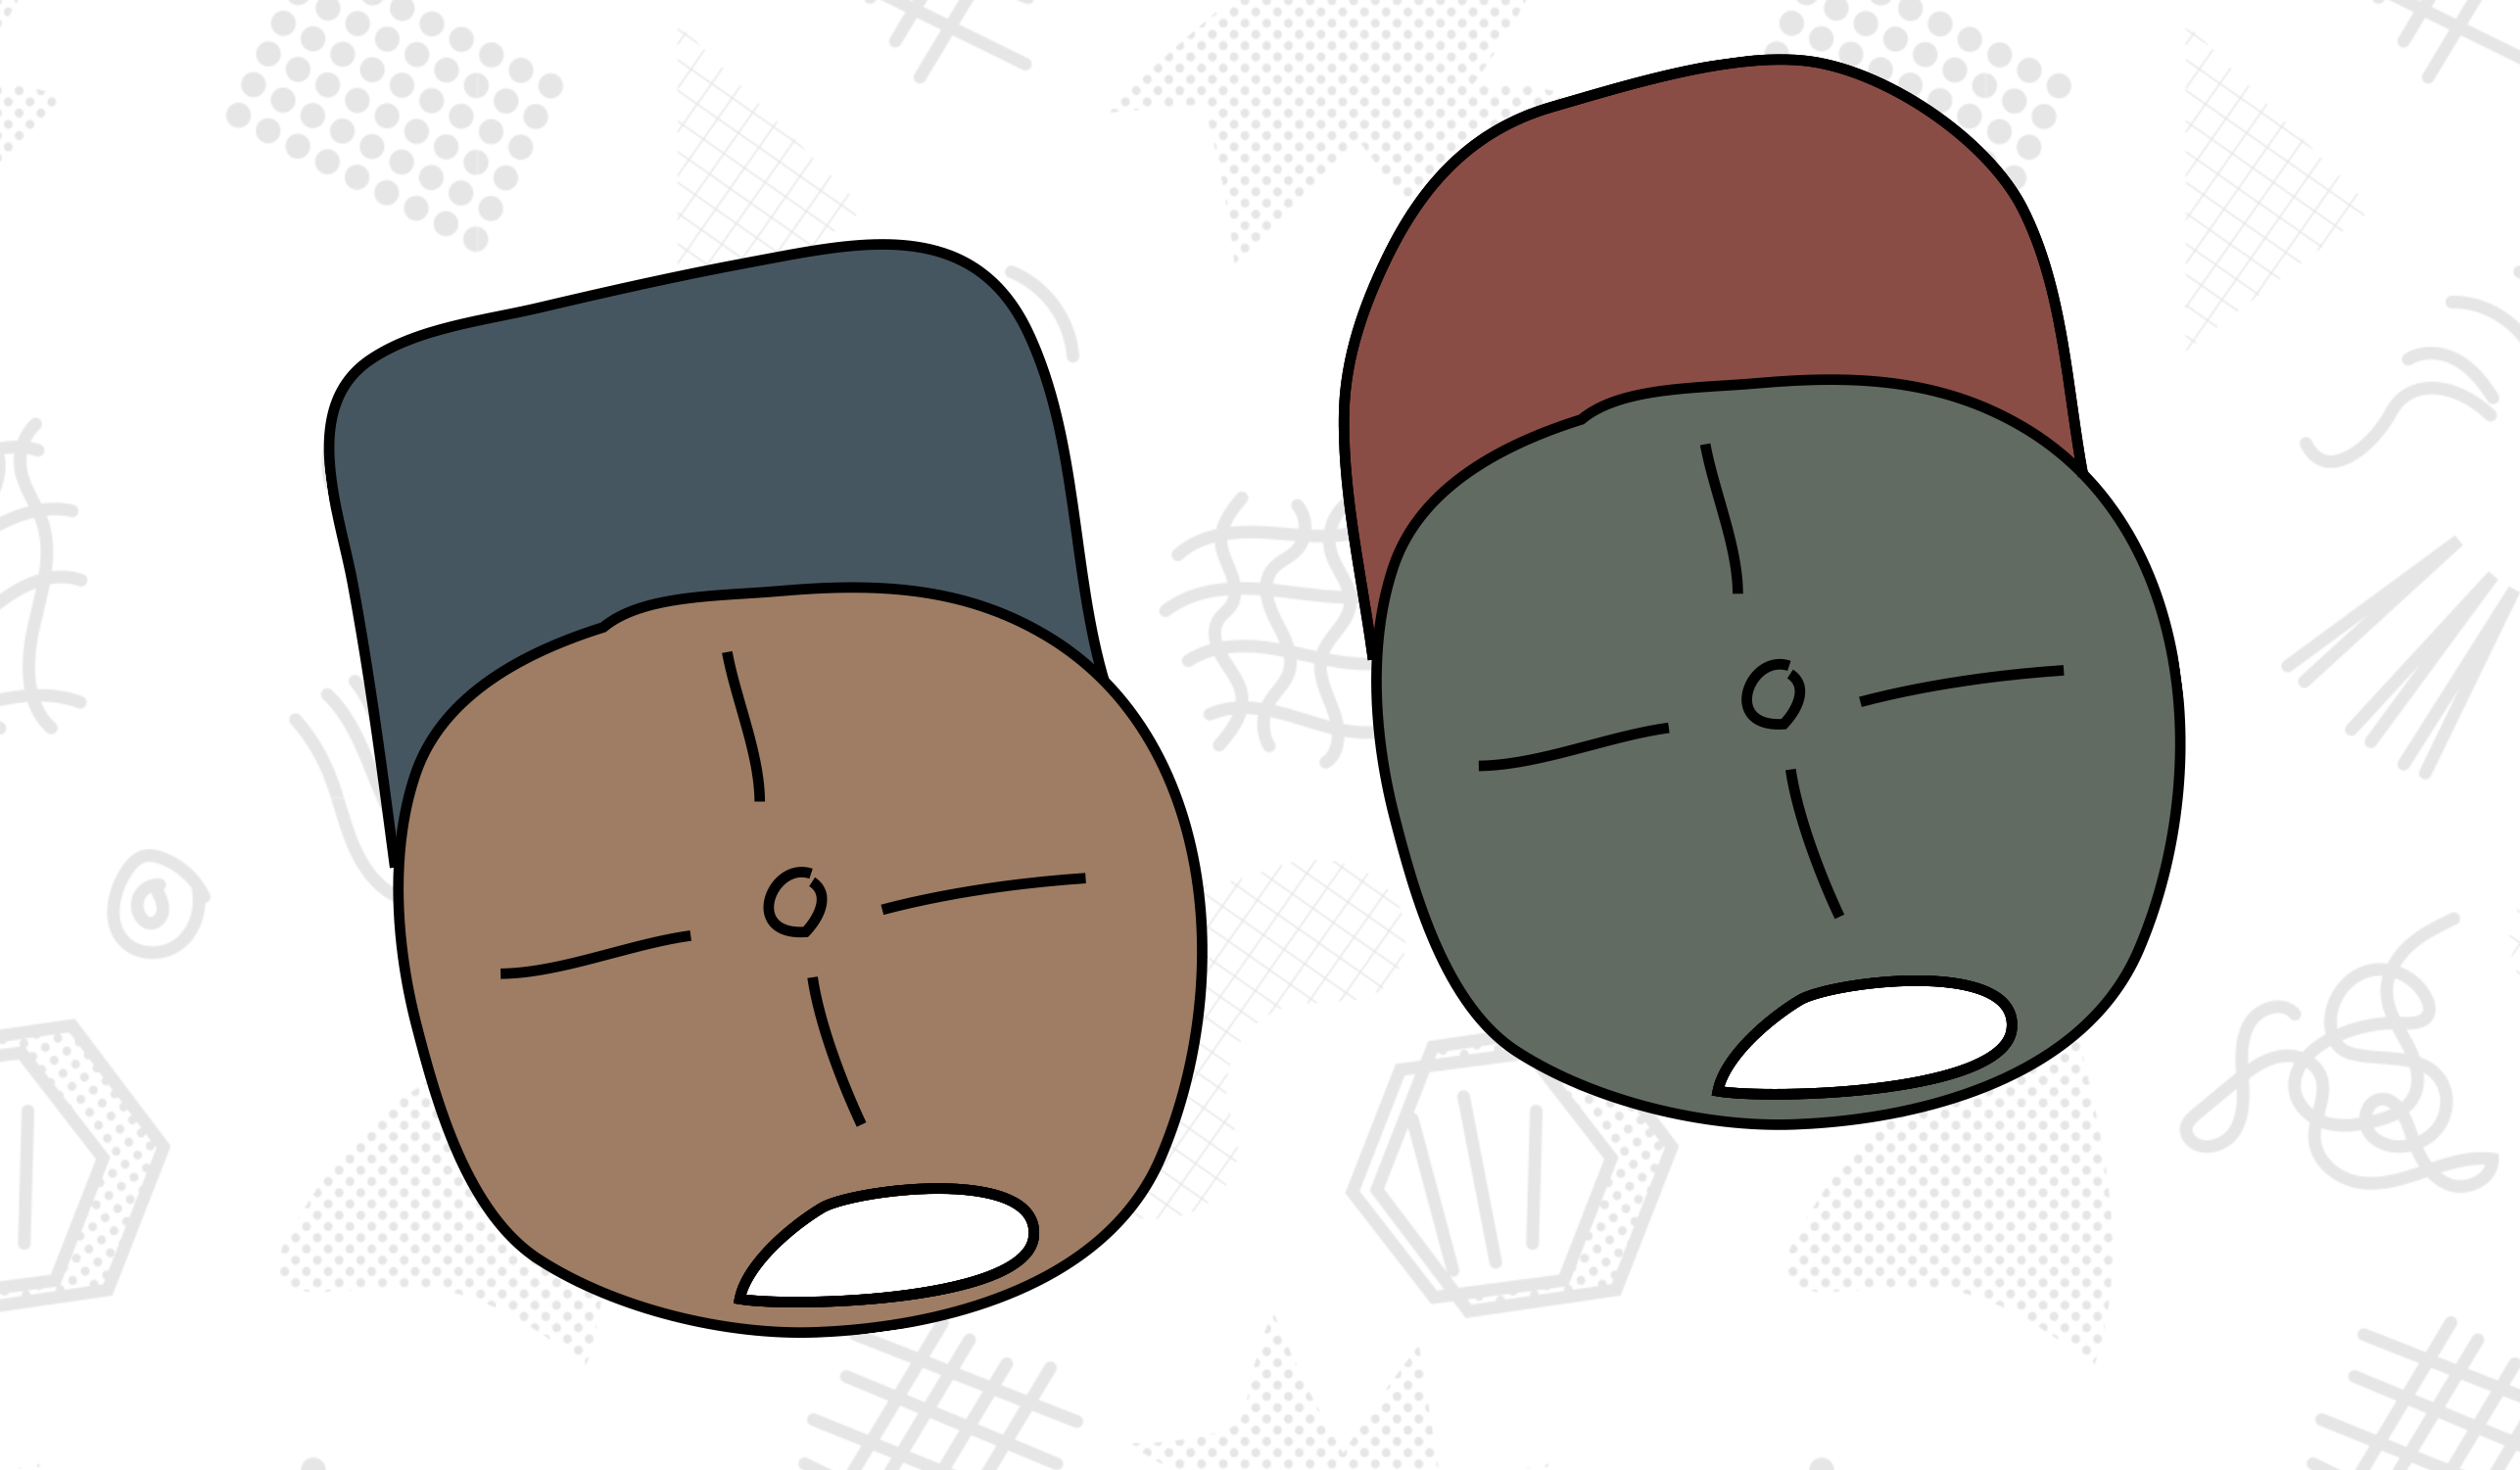 Old & New School: Rounded VS Square Brims